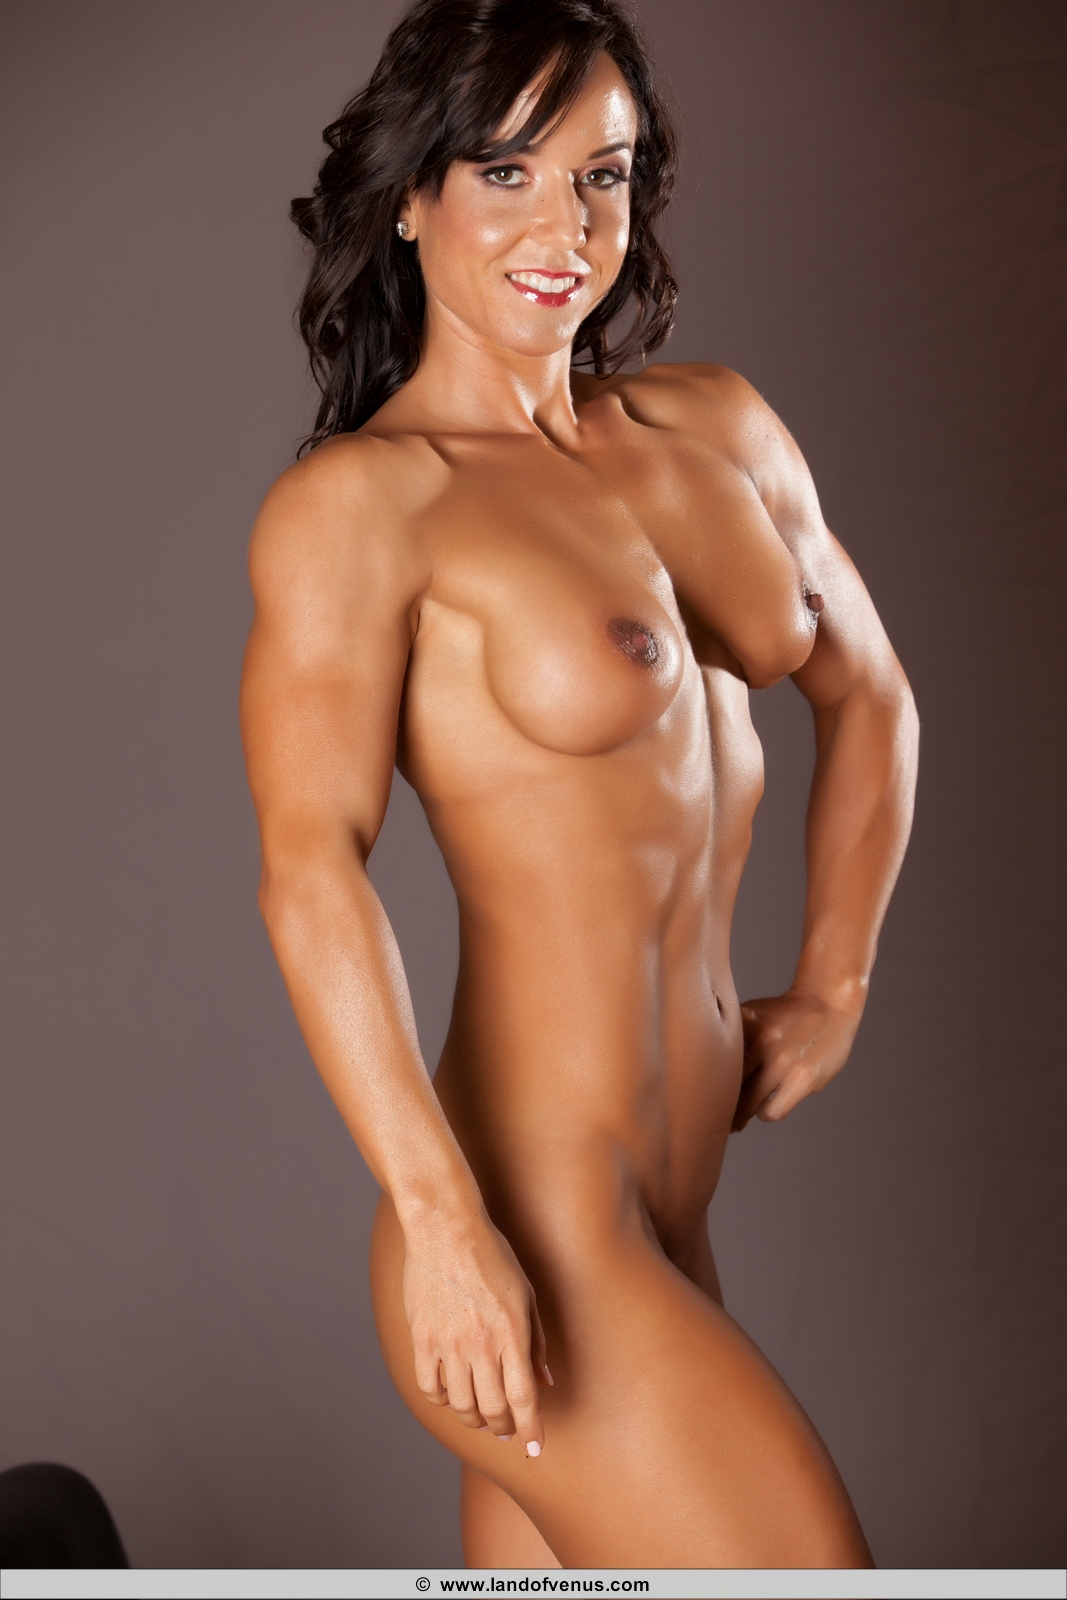 Naked muscle eropa women seems